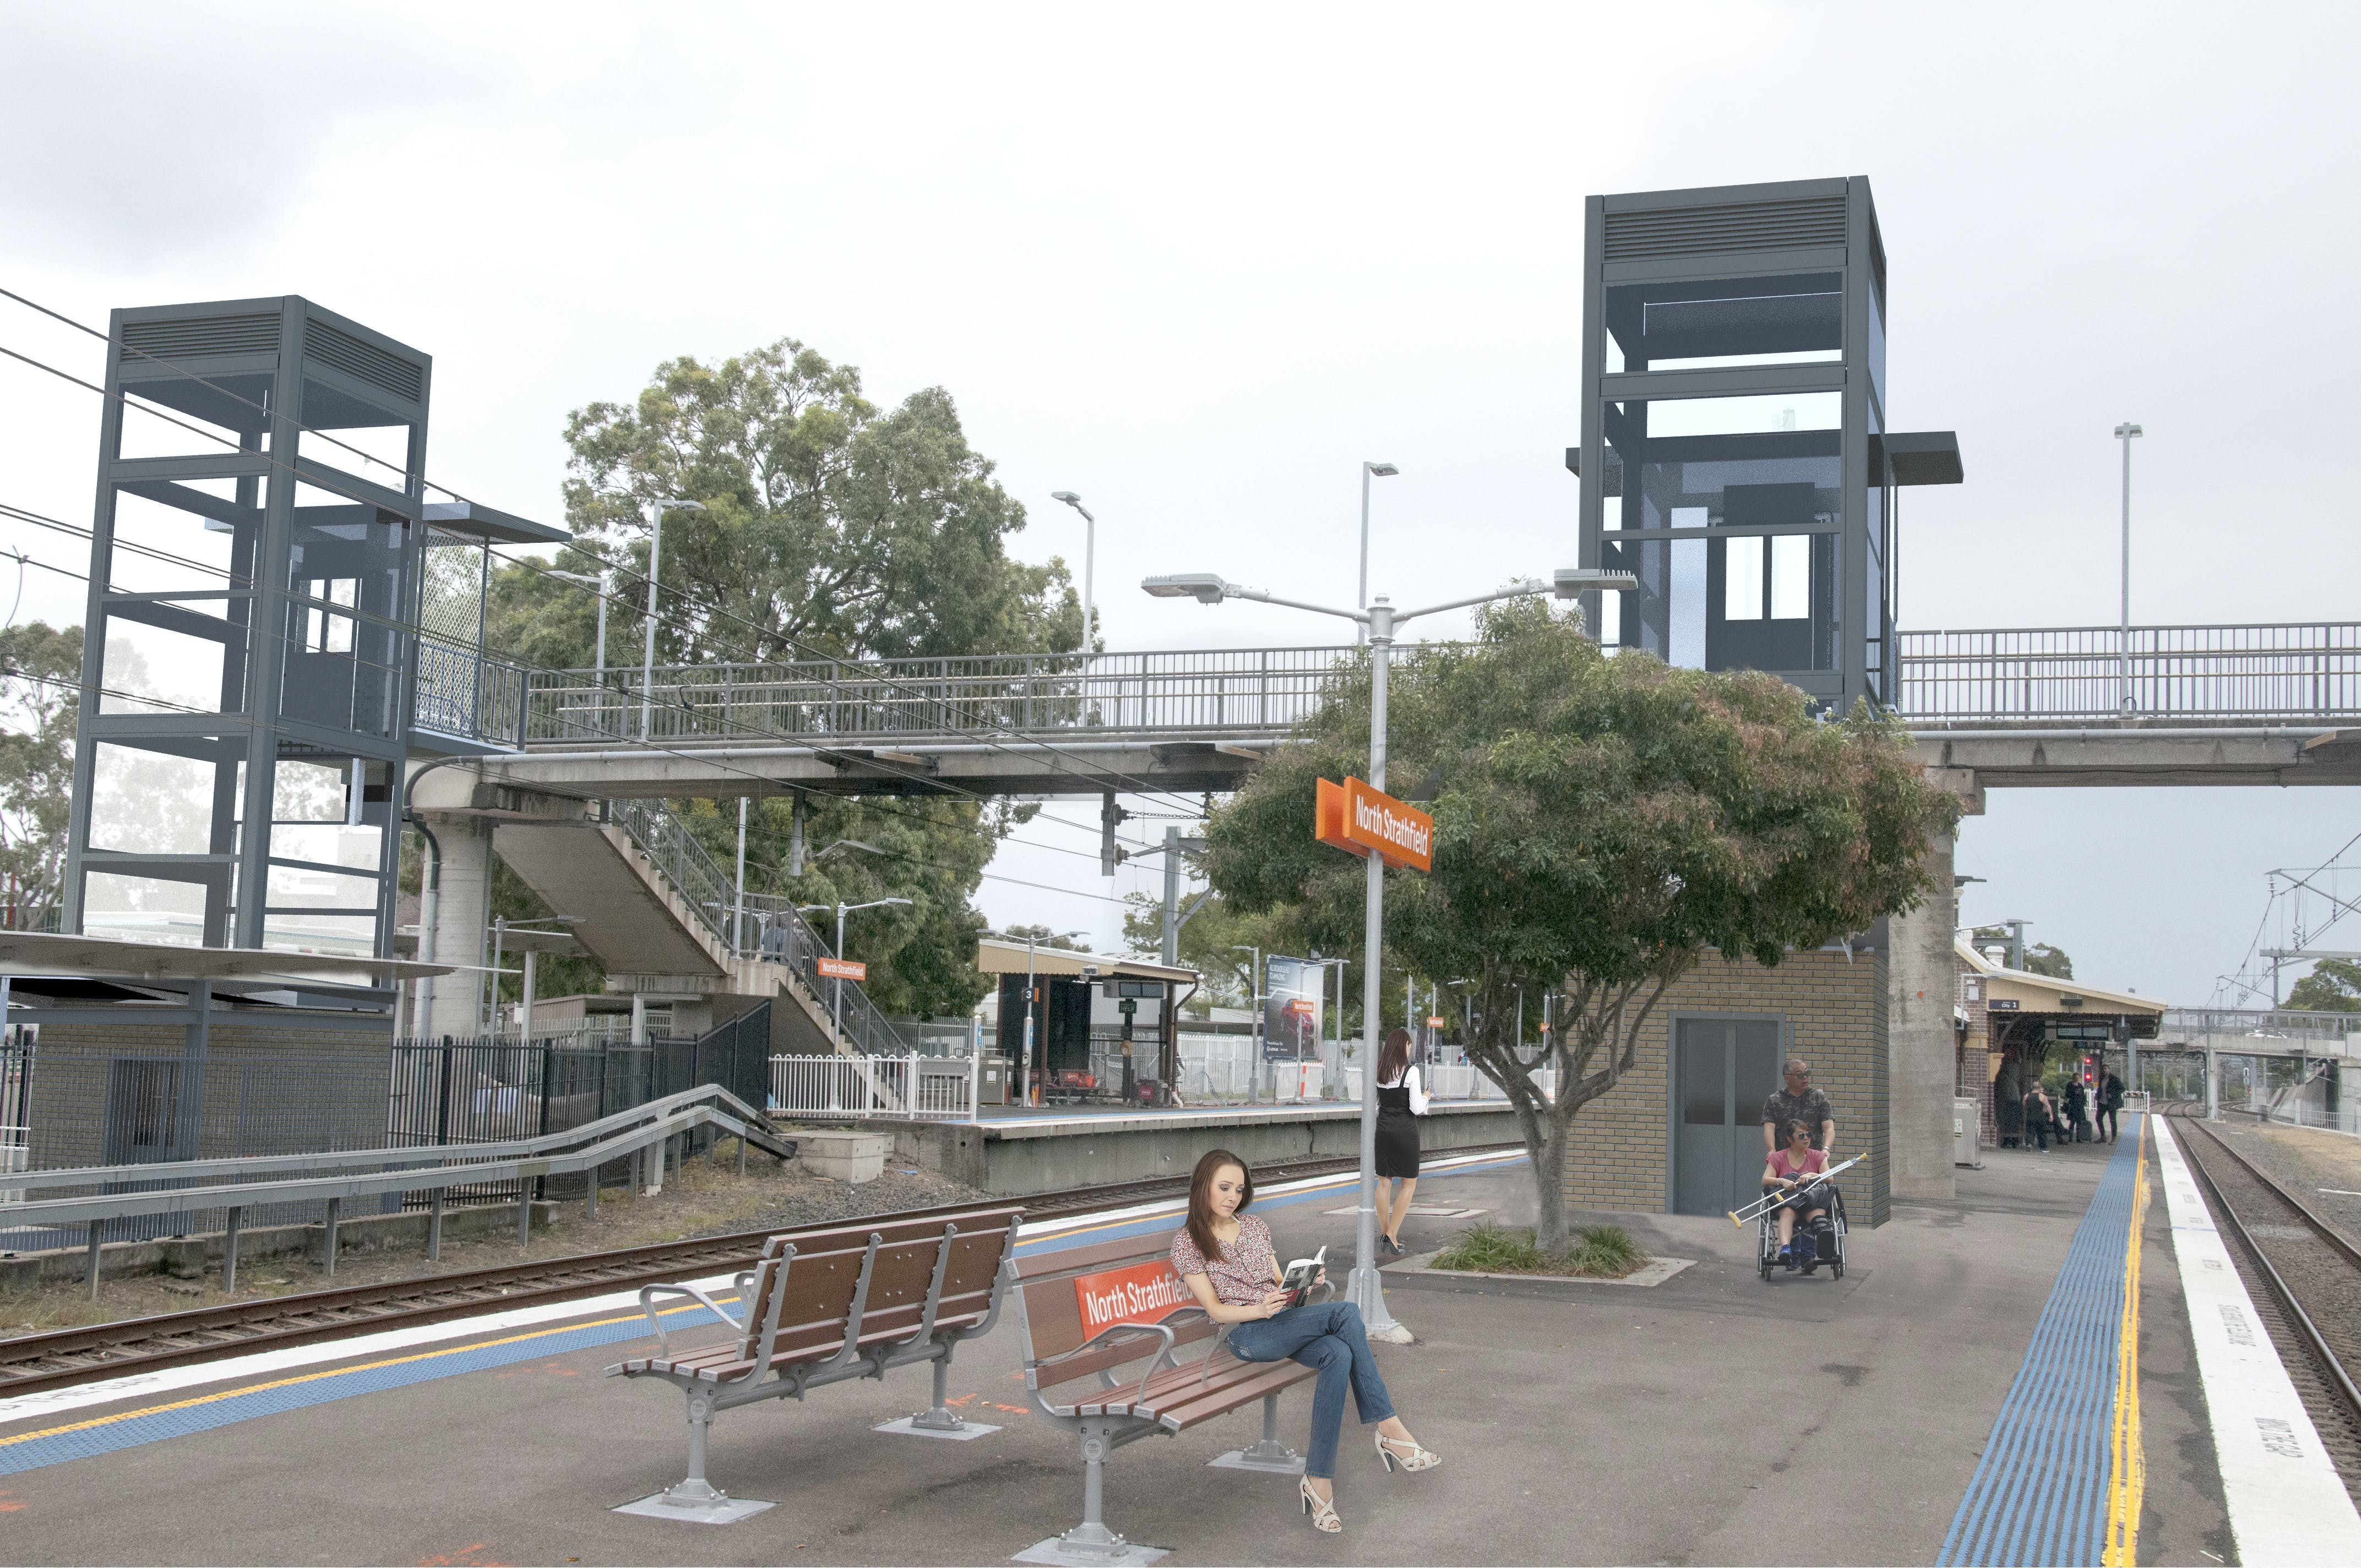 Artist's impression of the North Strathfield Station Upgrade - subject to change due to detailed design